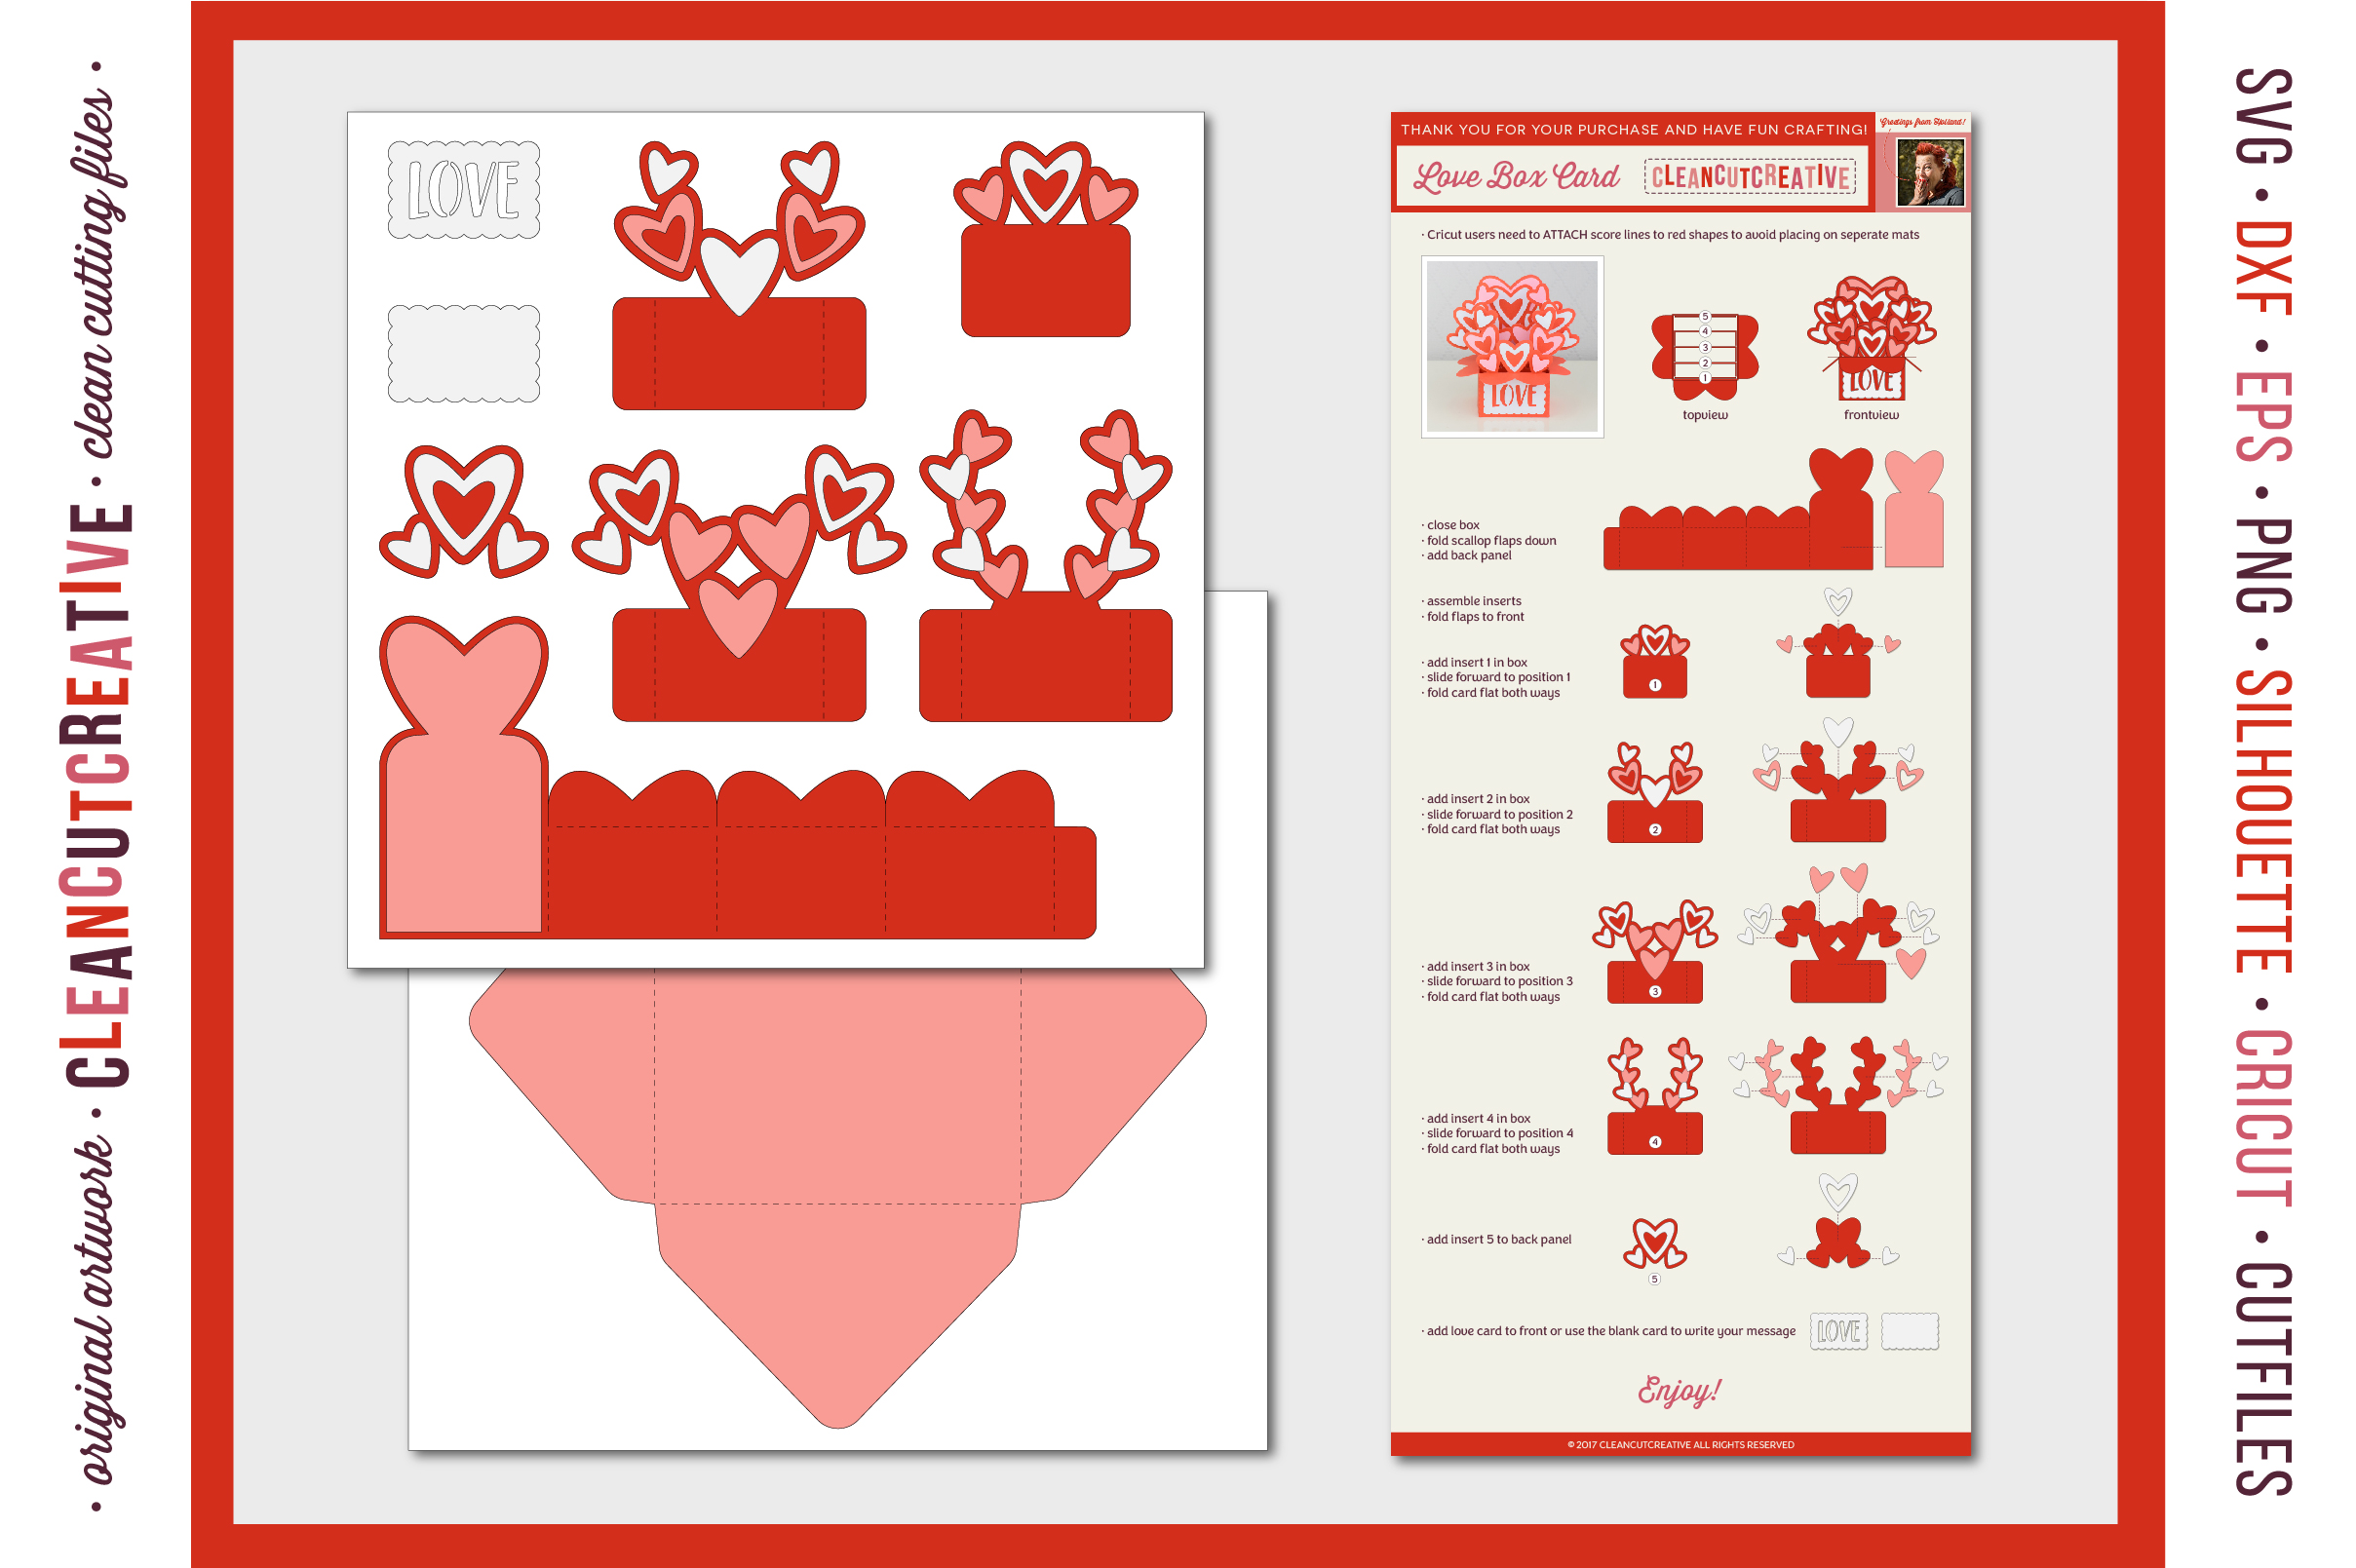 Love Box Card | Valentine Card in a Box with hearts 3D craft example image 5